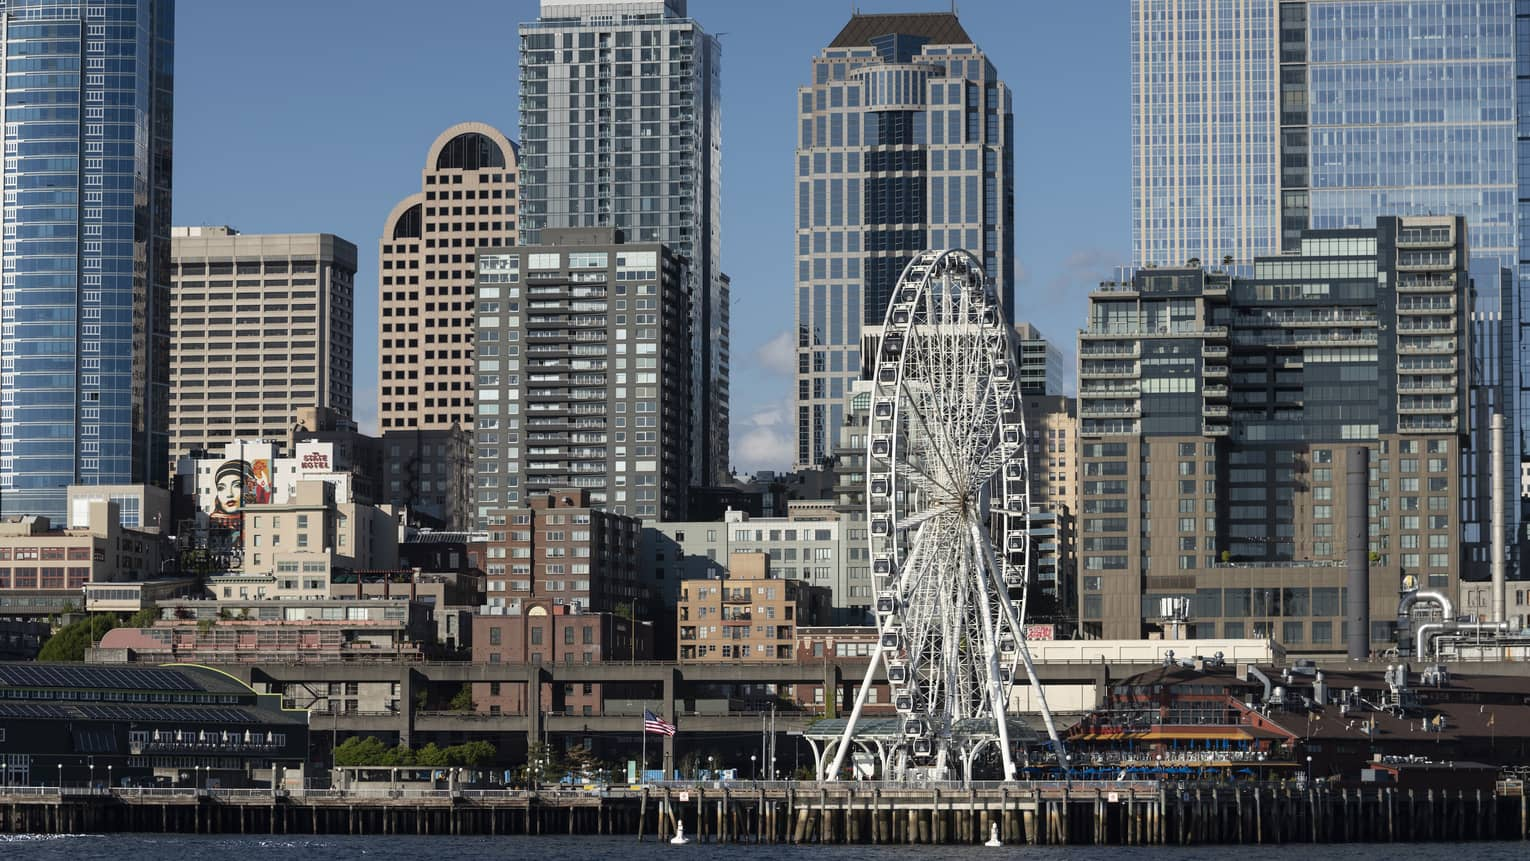 The Seattle Great Wheel stands out among skyscrapers on Elliott Bay